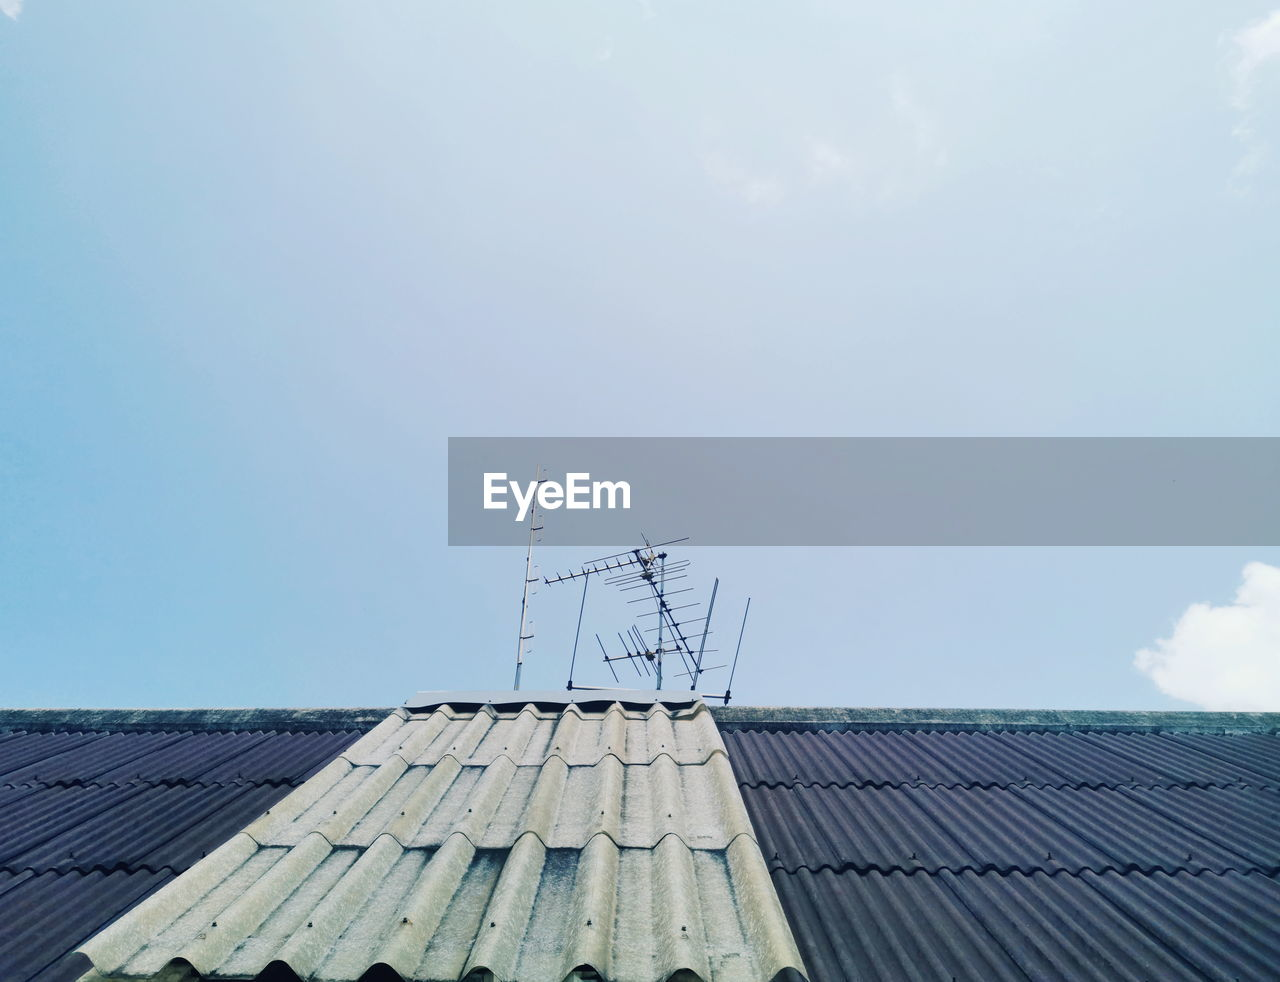 sky, roof, technology, architecture, nature, cloud - sky, built structure, day, building exterior, antenna - aerial, fuel and power generation, no people, outdoors, roof tile, building, television aerial, low angle view, blue, sunlight, alternative energy, electricity, power supply, sustainable resources